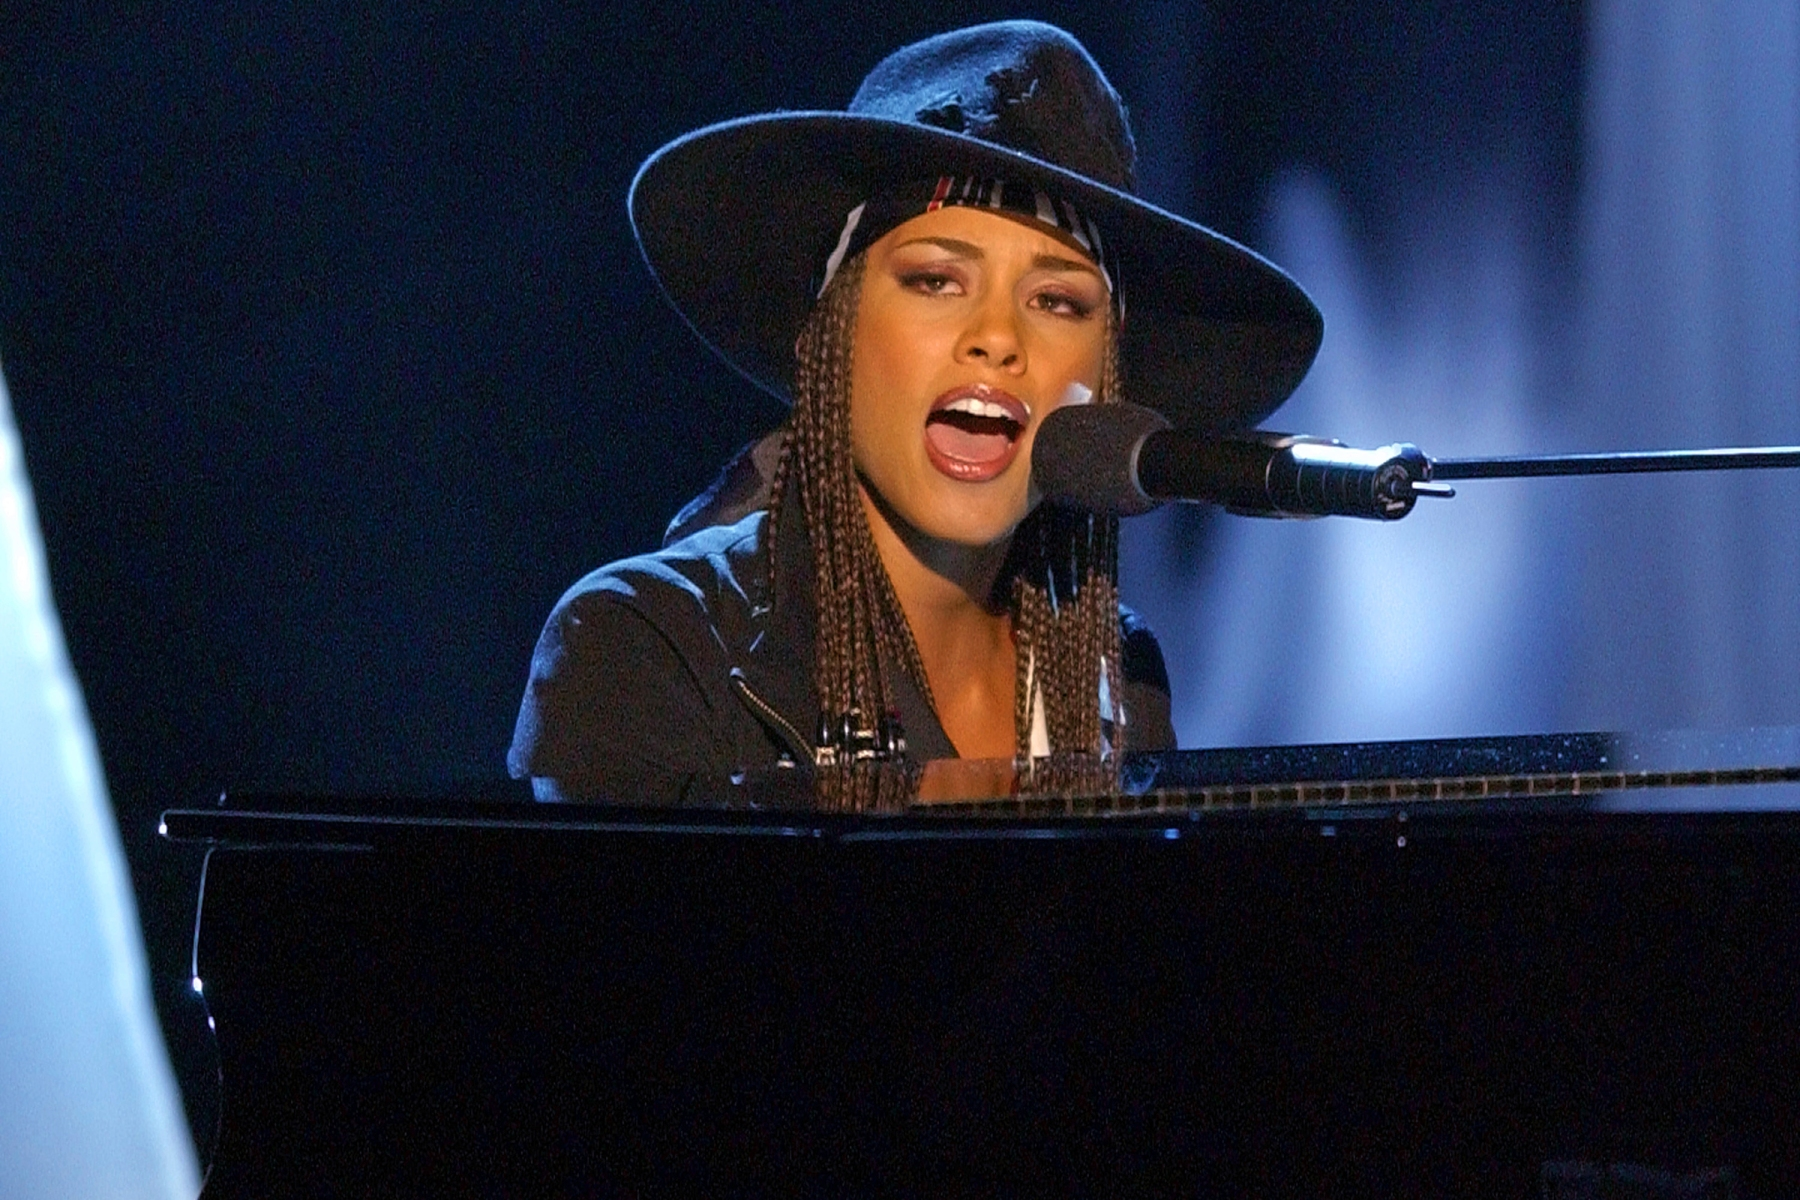 Alicia Keys The Next Queen Of Soul Rolling Stone Dile a tu mamá que. https www rollingstone com music music news alicia keys the next queen of soul 83113